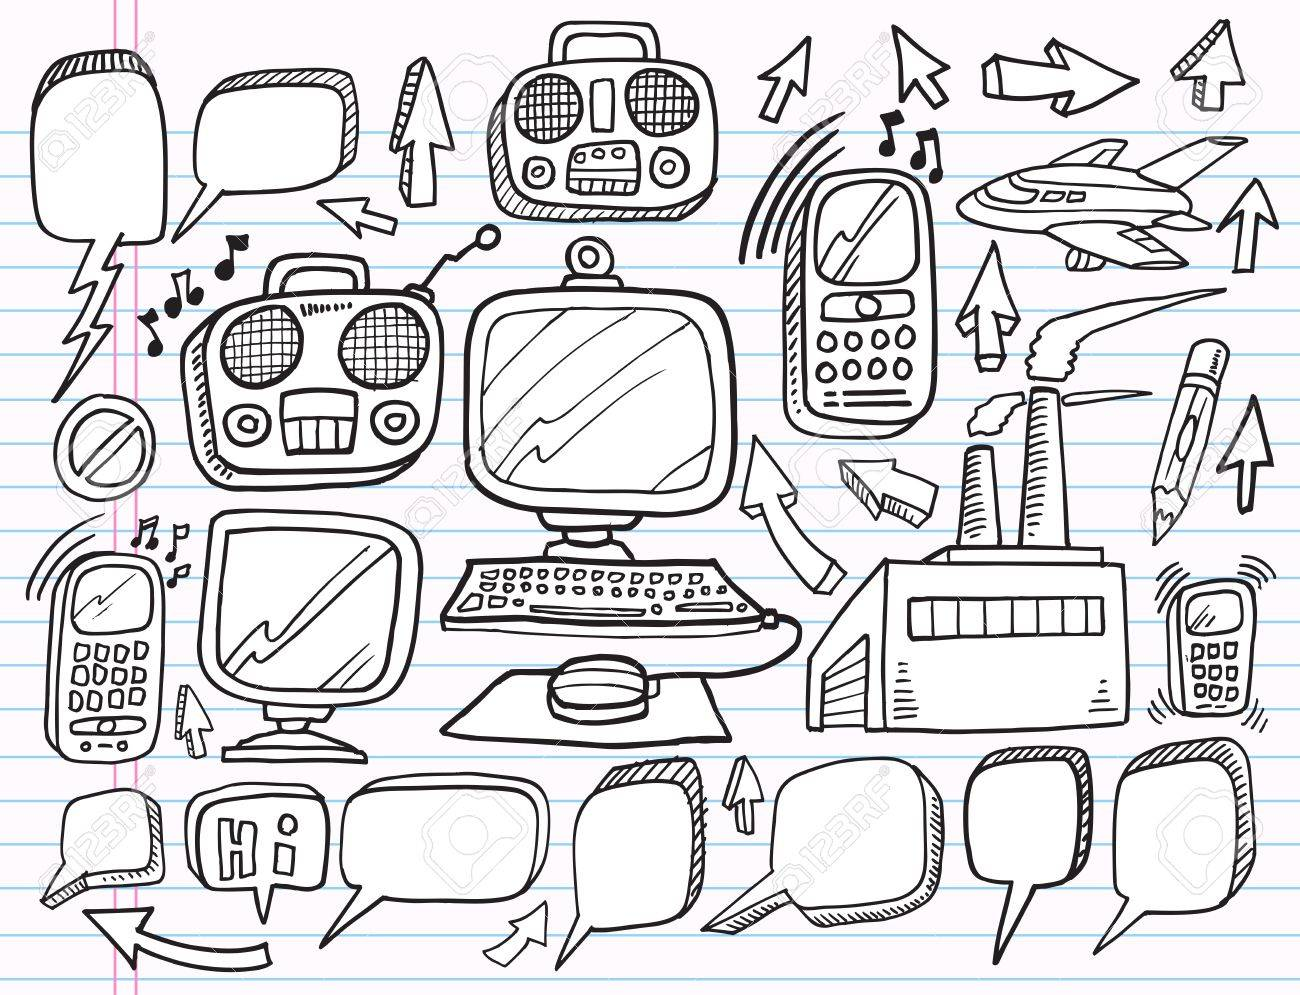 Notebook doodle electronics work business design elements vector